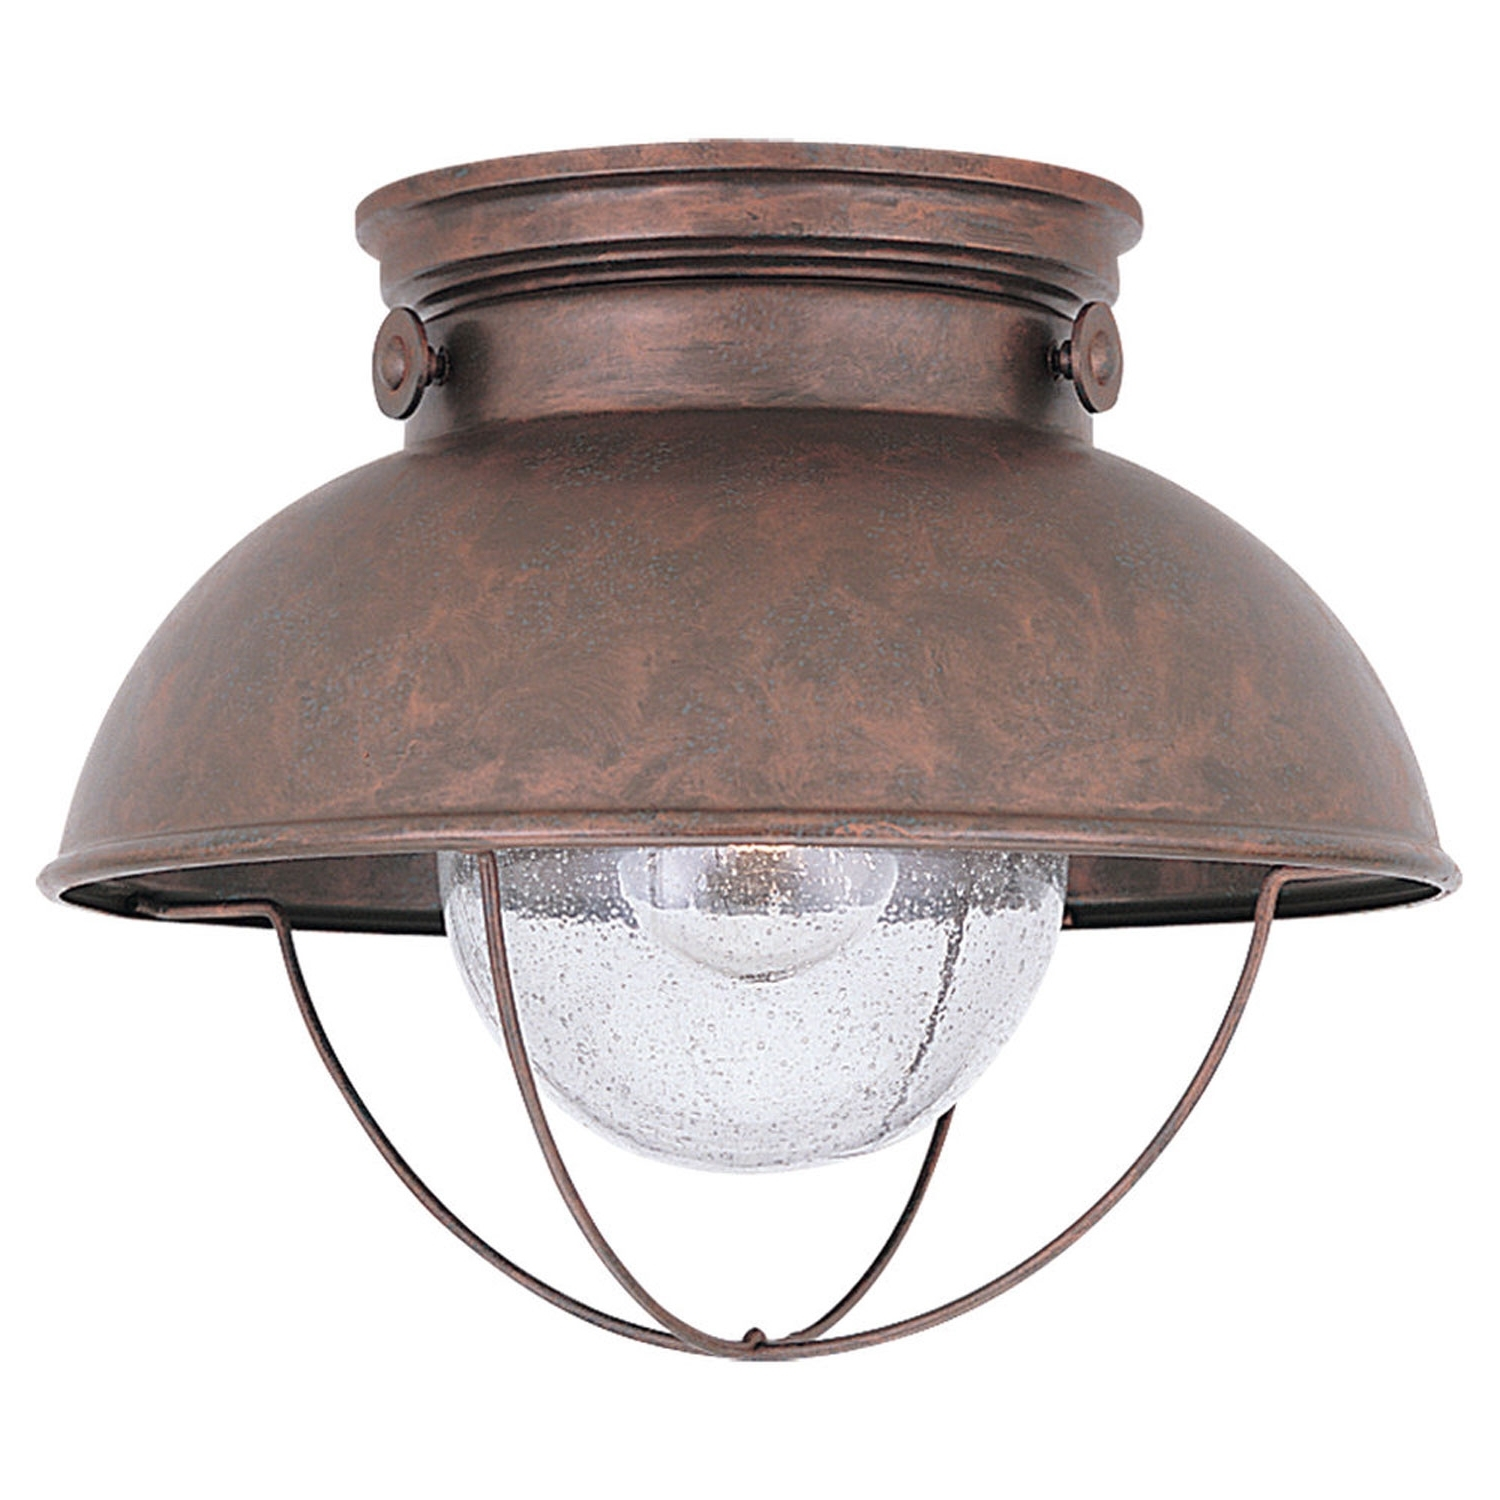 Sea Gull Lighting Sebring Weathered Copper Outdoor Ceiling Light Inside Most Current Outdoor Ceiling Can Lights (View 5 of 20)